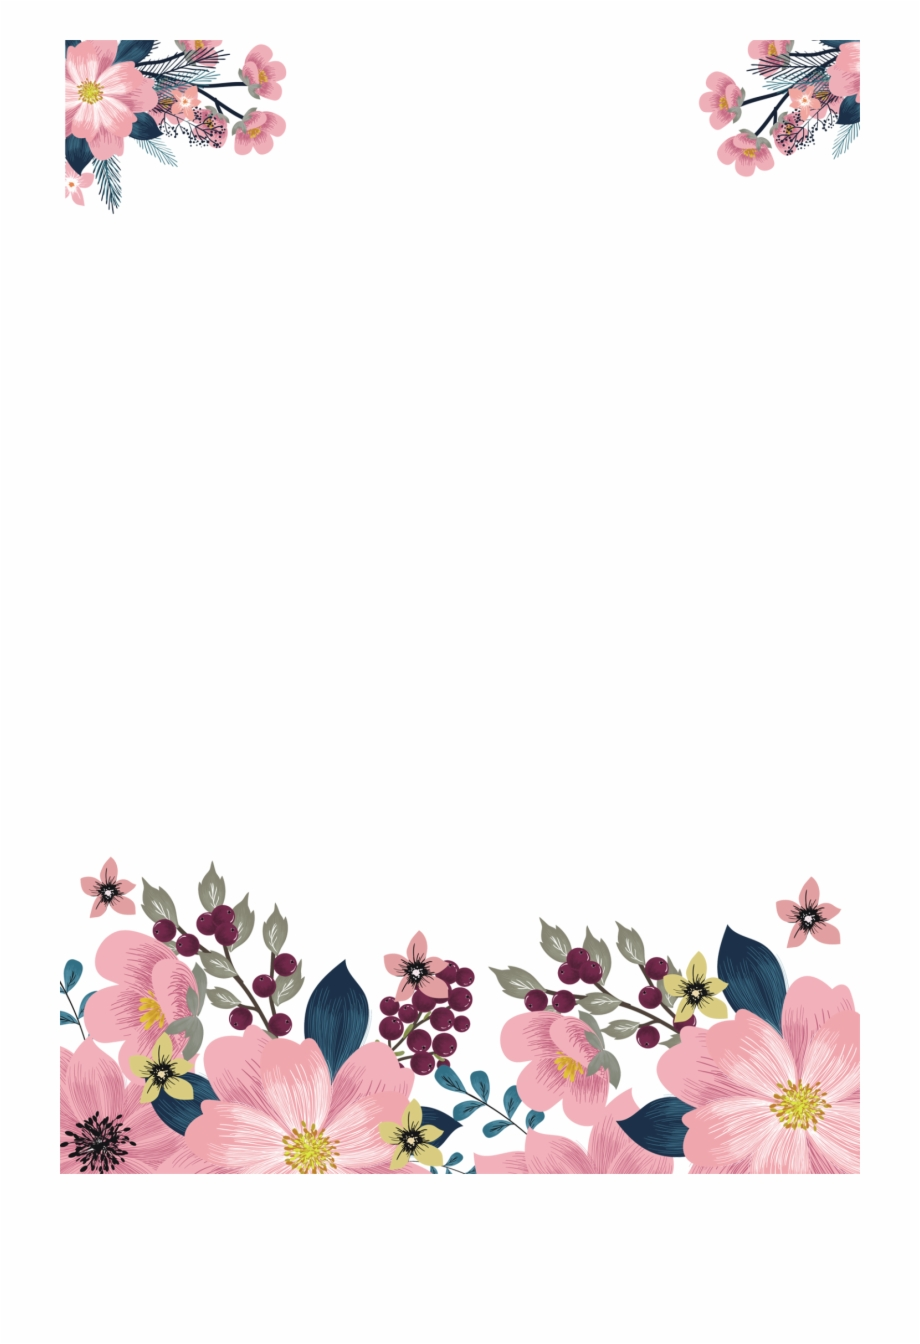 Flower Png Watercolor , Floral Watercolor Png Free Download